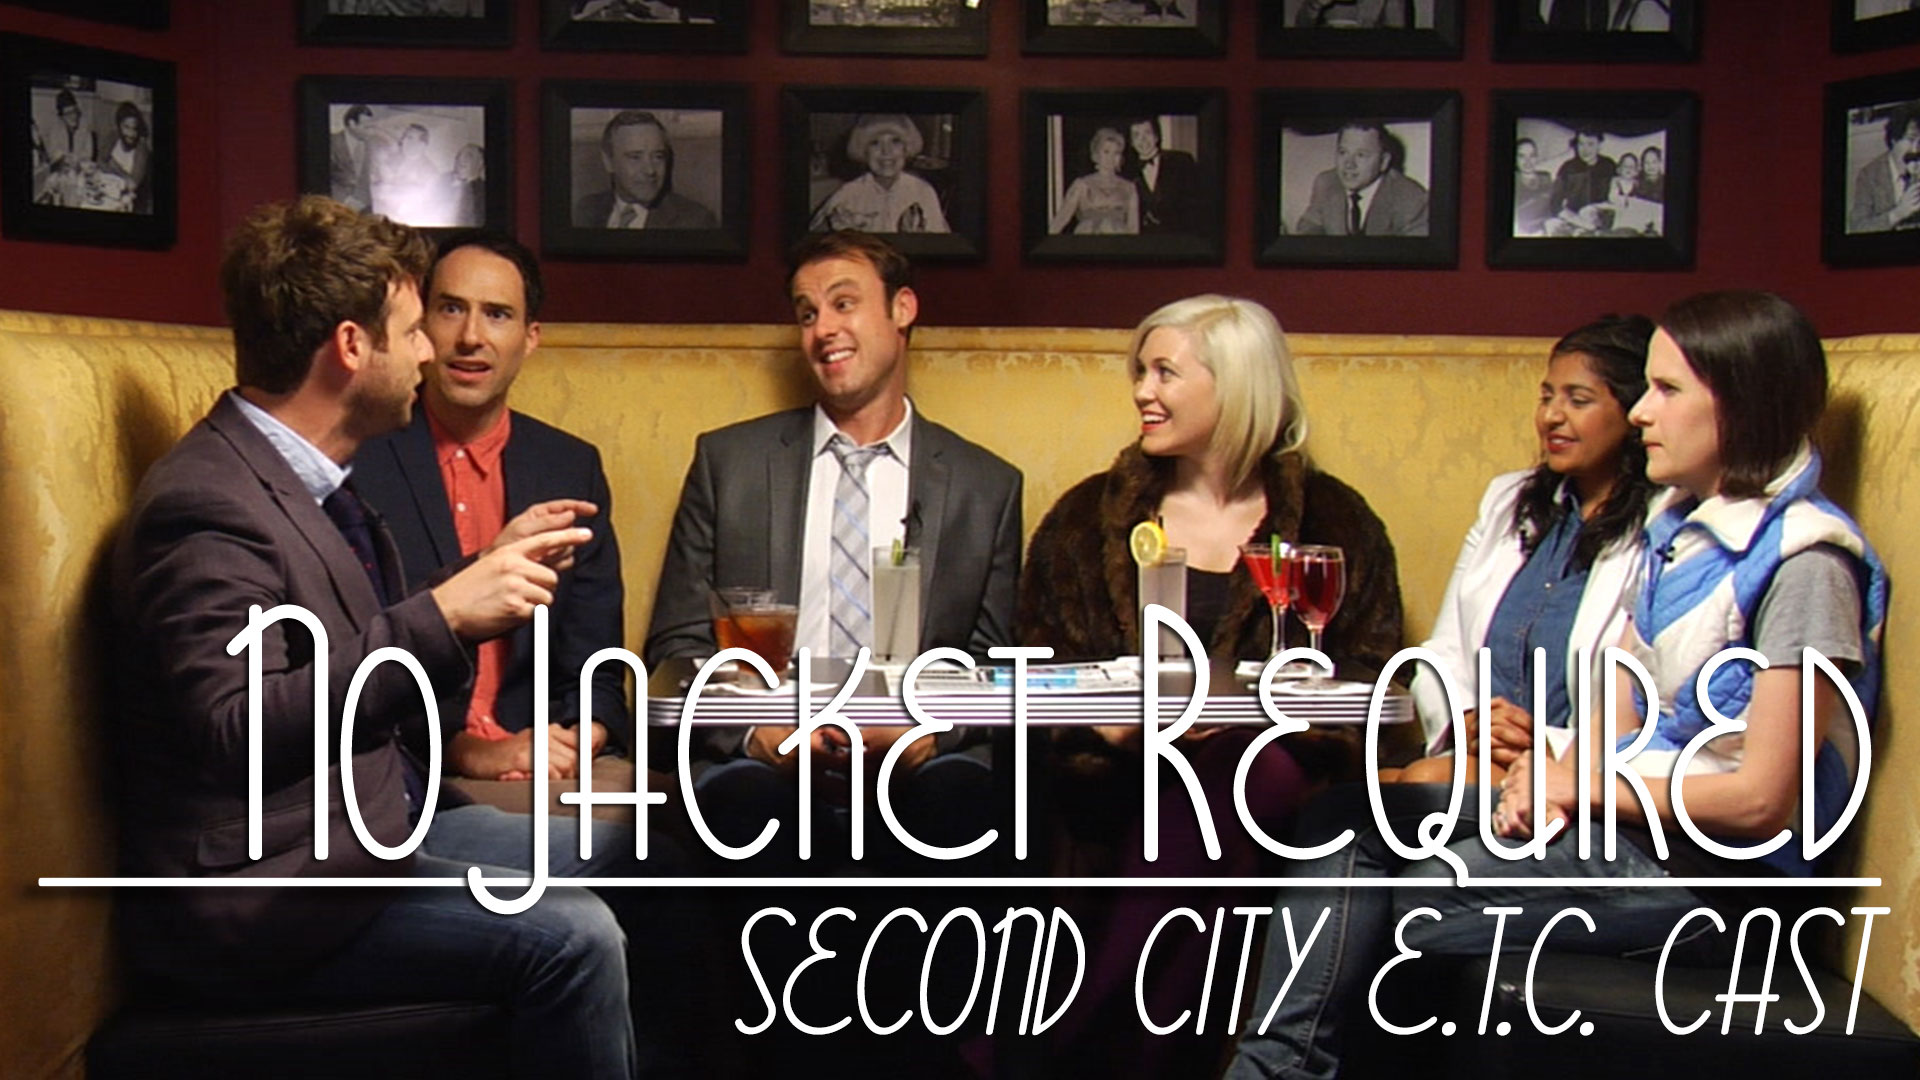 The Second City E.T.C. Cast on No Jacket Required